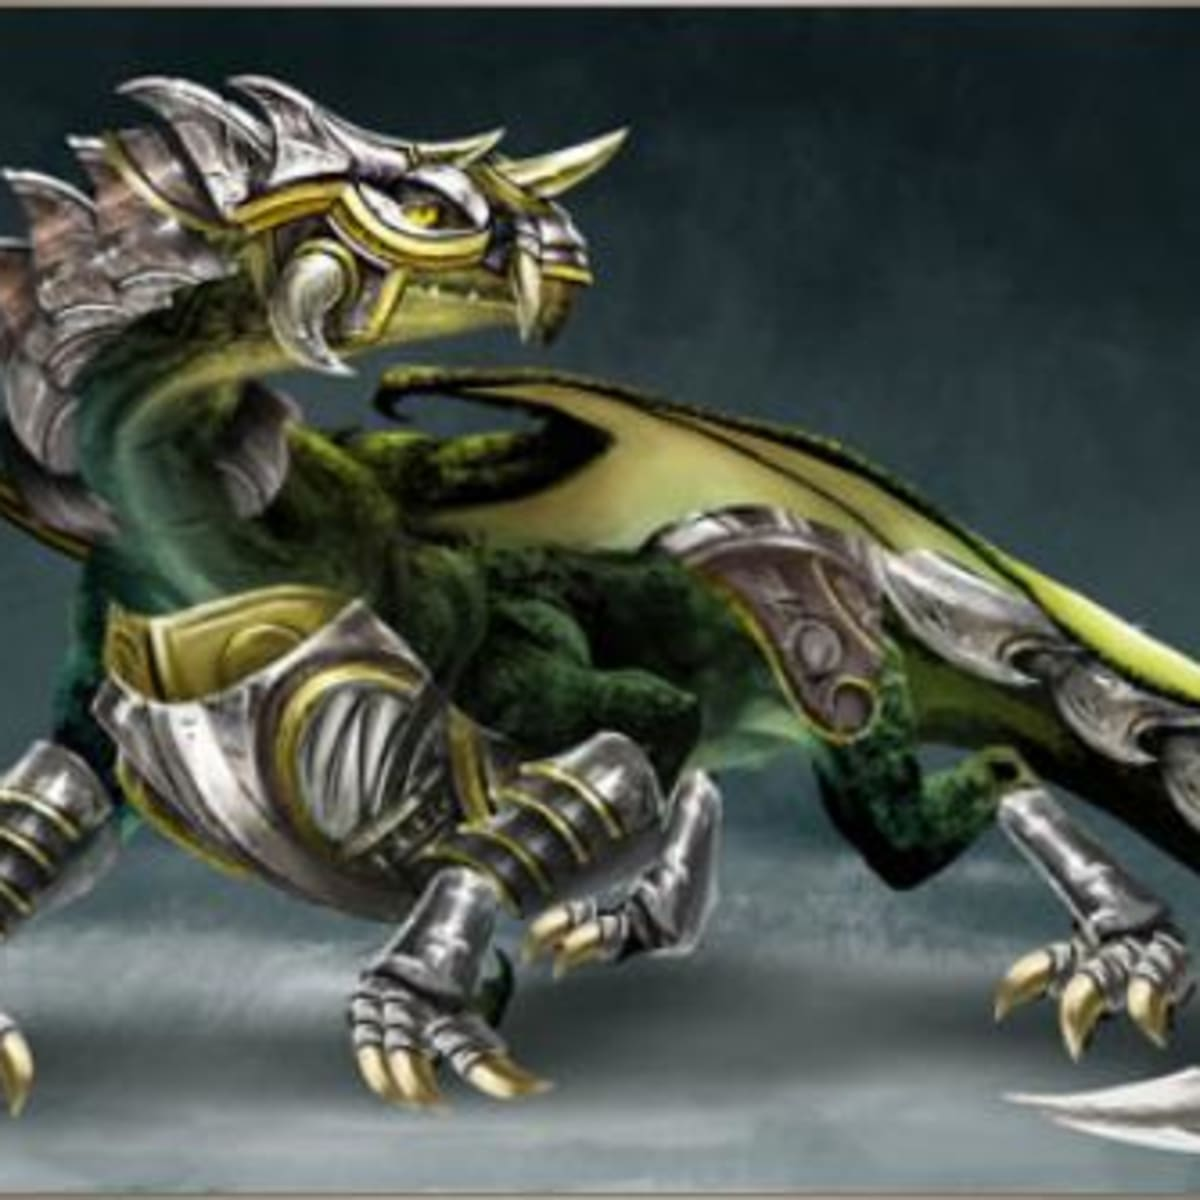 Dragons Of Atlantis Great Dragon Armor Guide Levelskip Video Games Armor dragon drawings drawing dragonlord dogwaffler dogwaffle dotm moment fantasy thebest3d broooks christina. dragons of atlantis great dragon